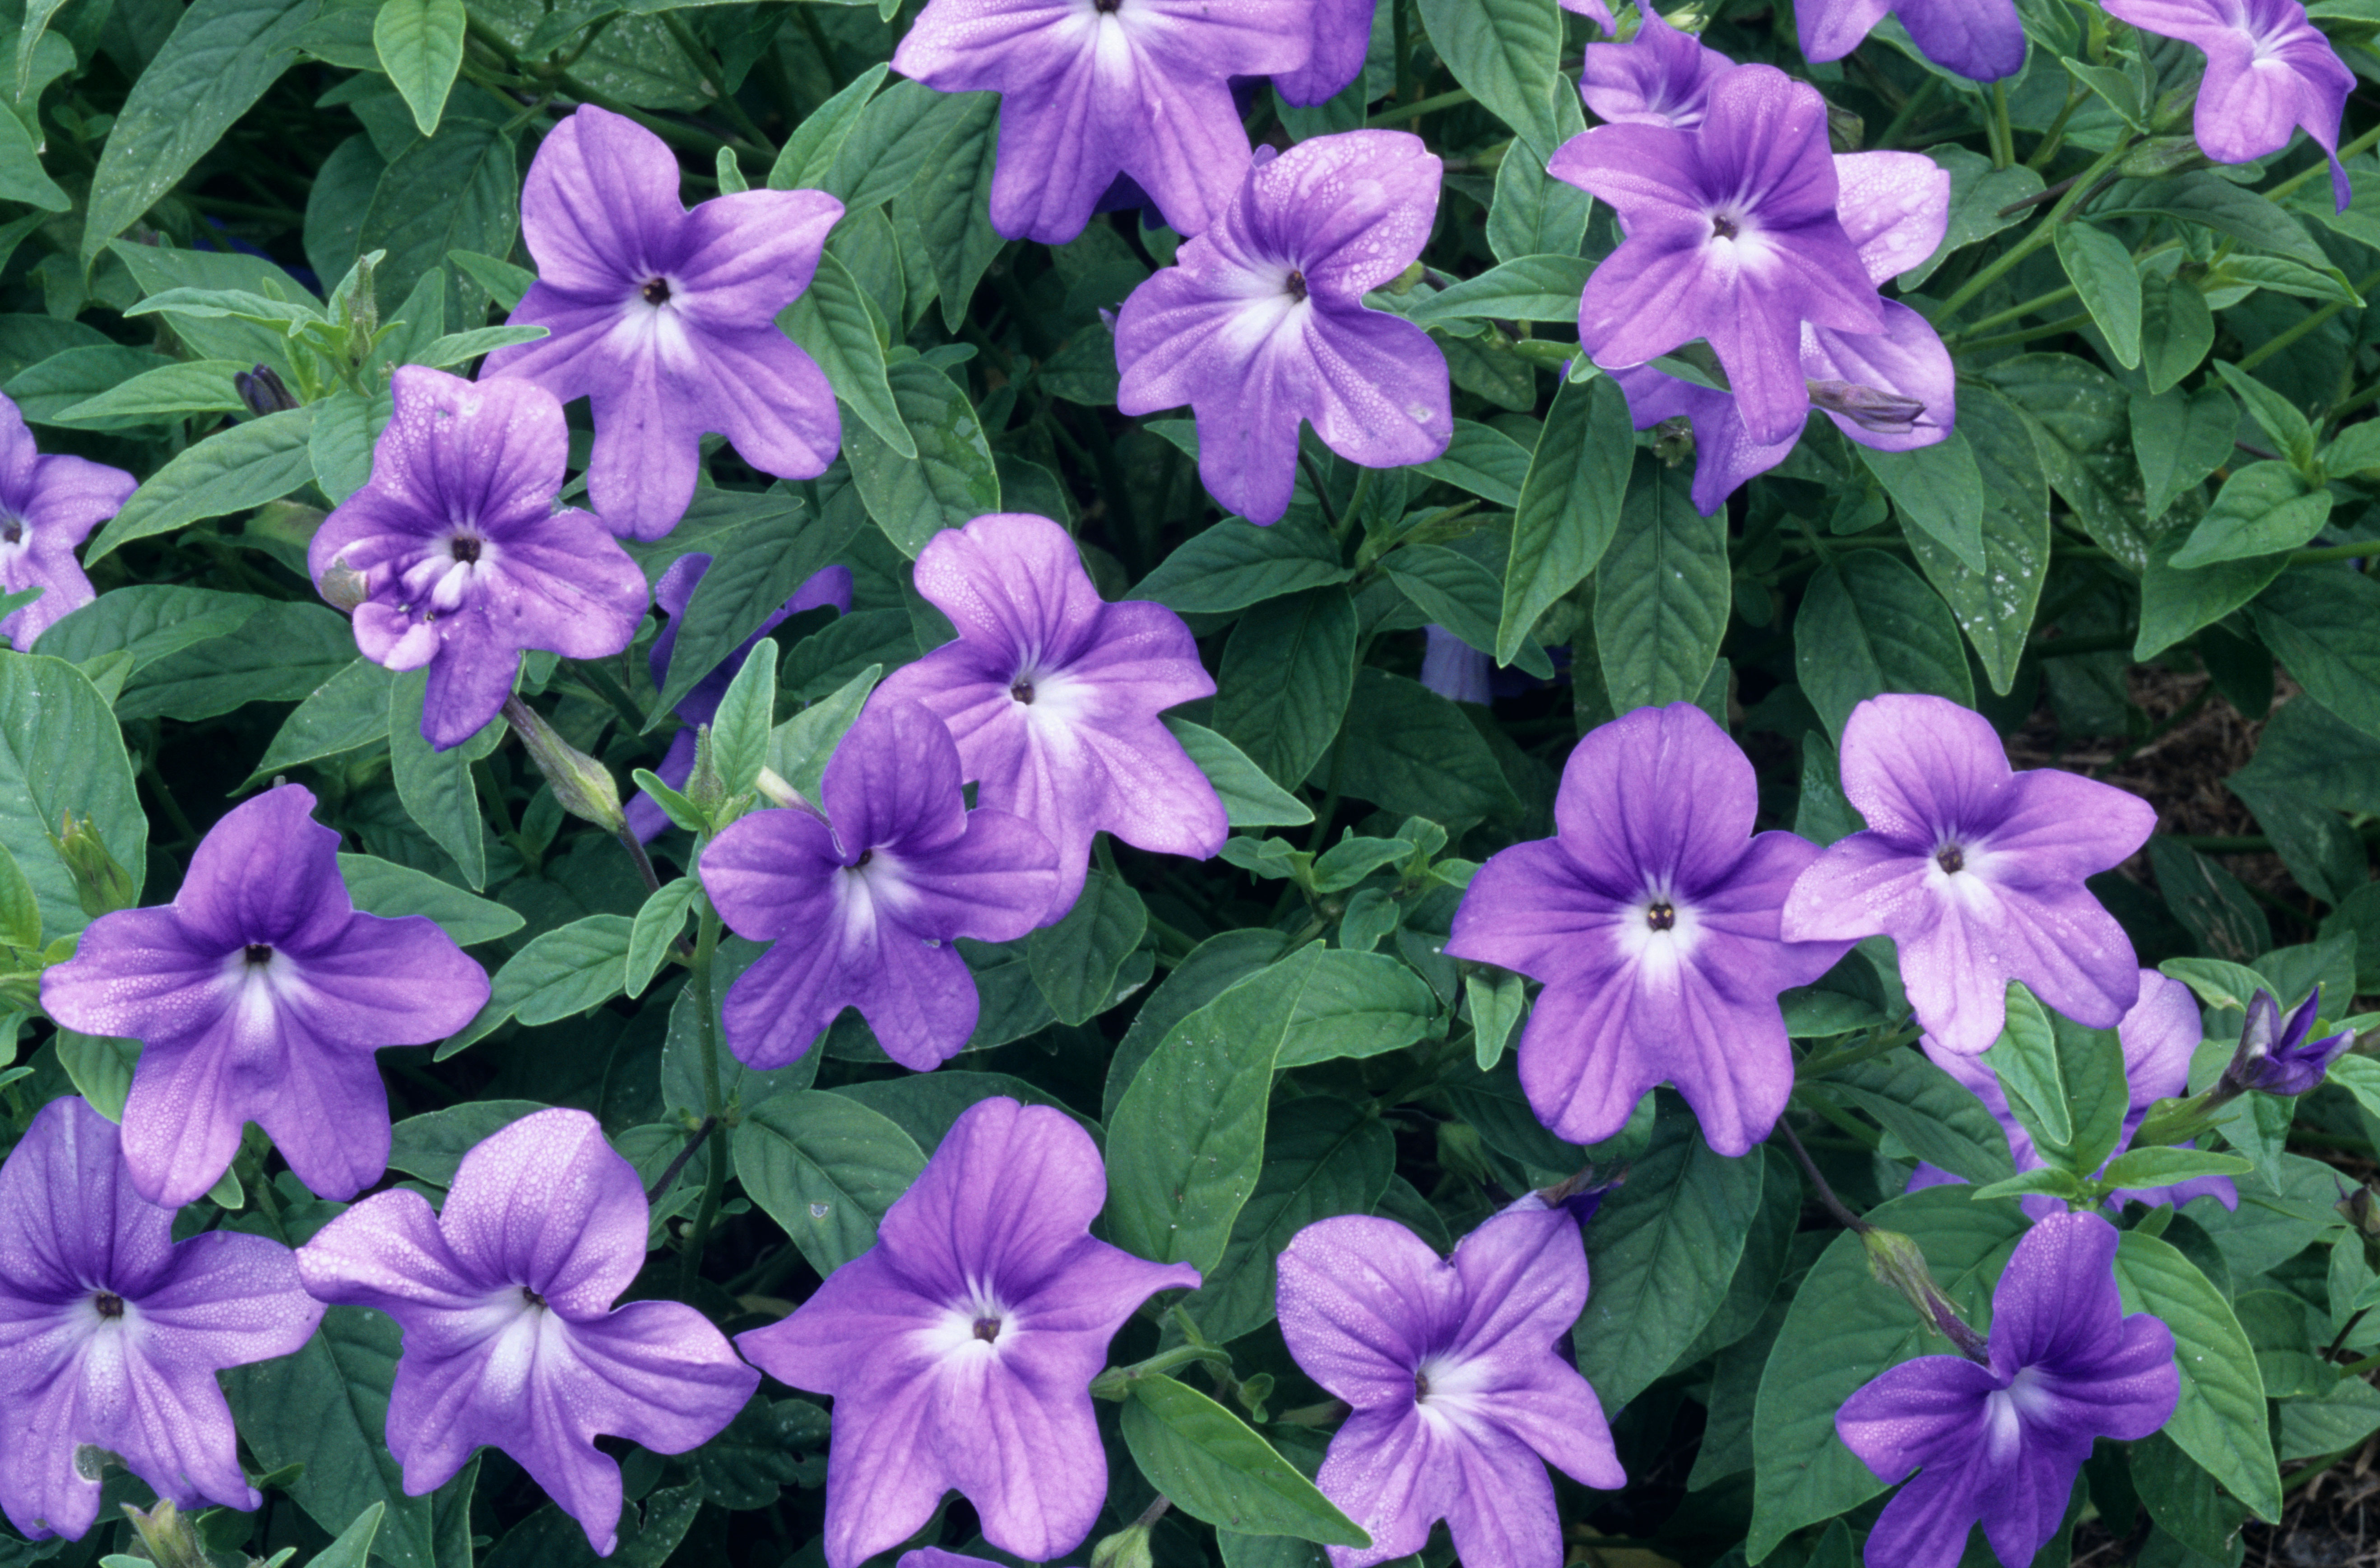 Plant some of these beauties for great garden color even in shade amethyst flower browallia hybrids izmirmasajfo